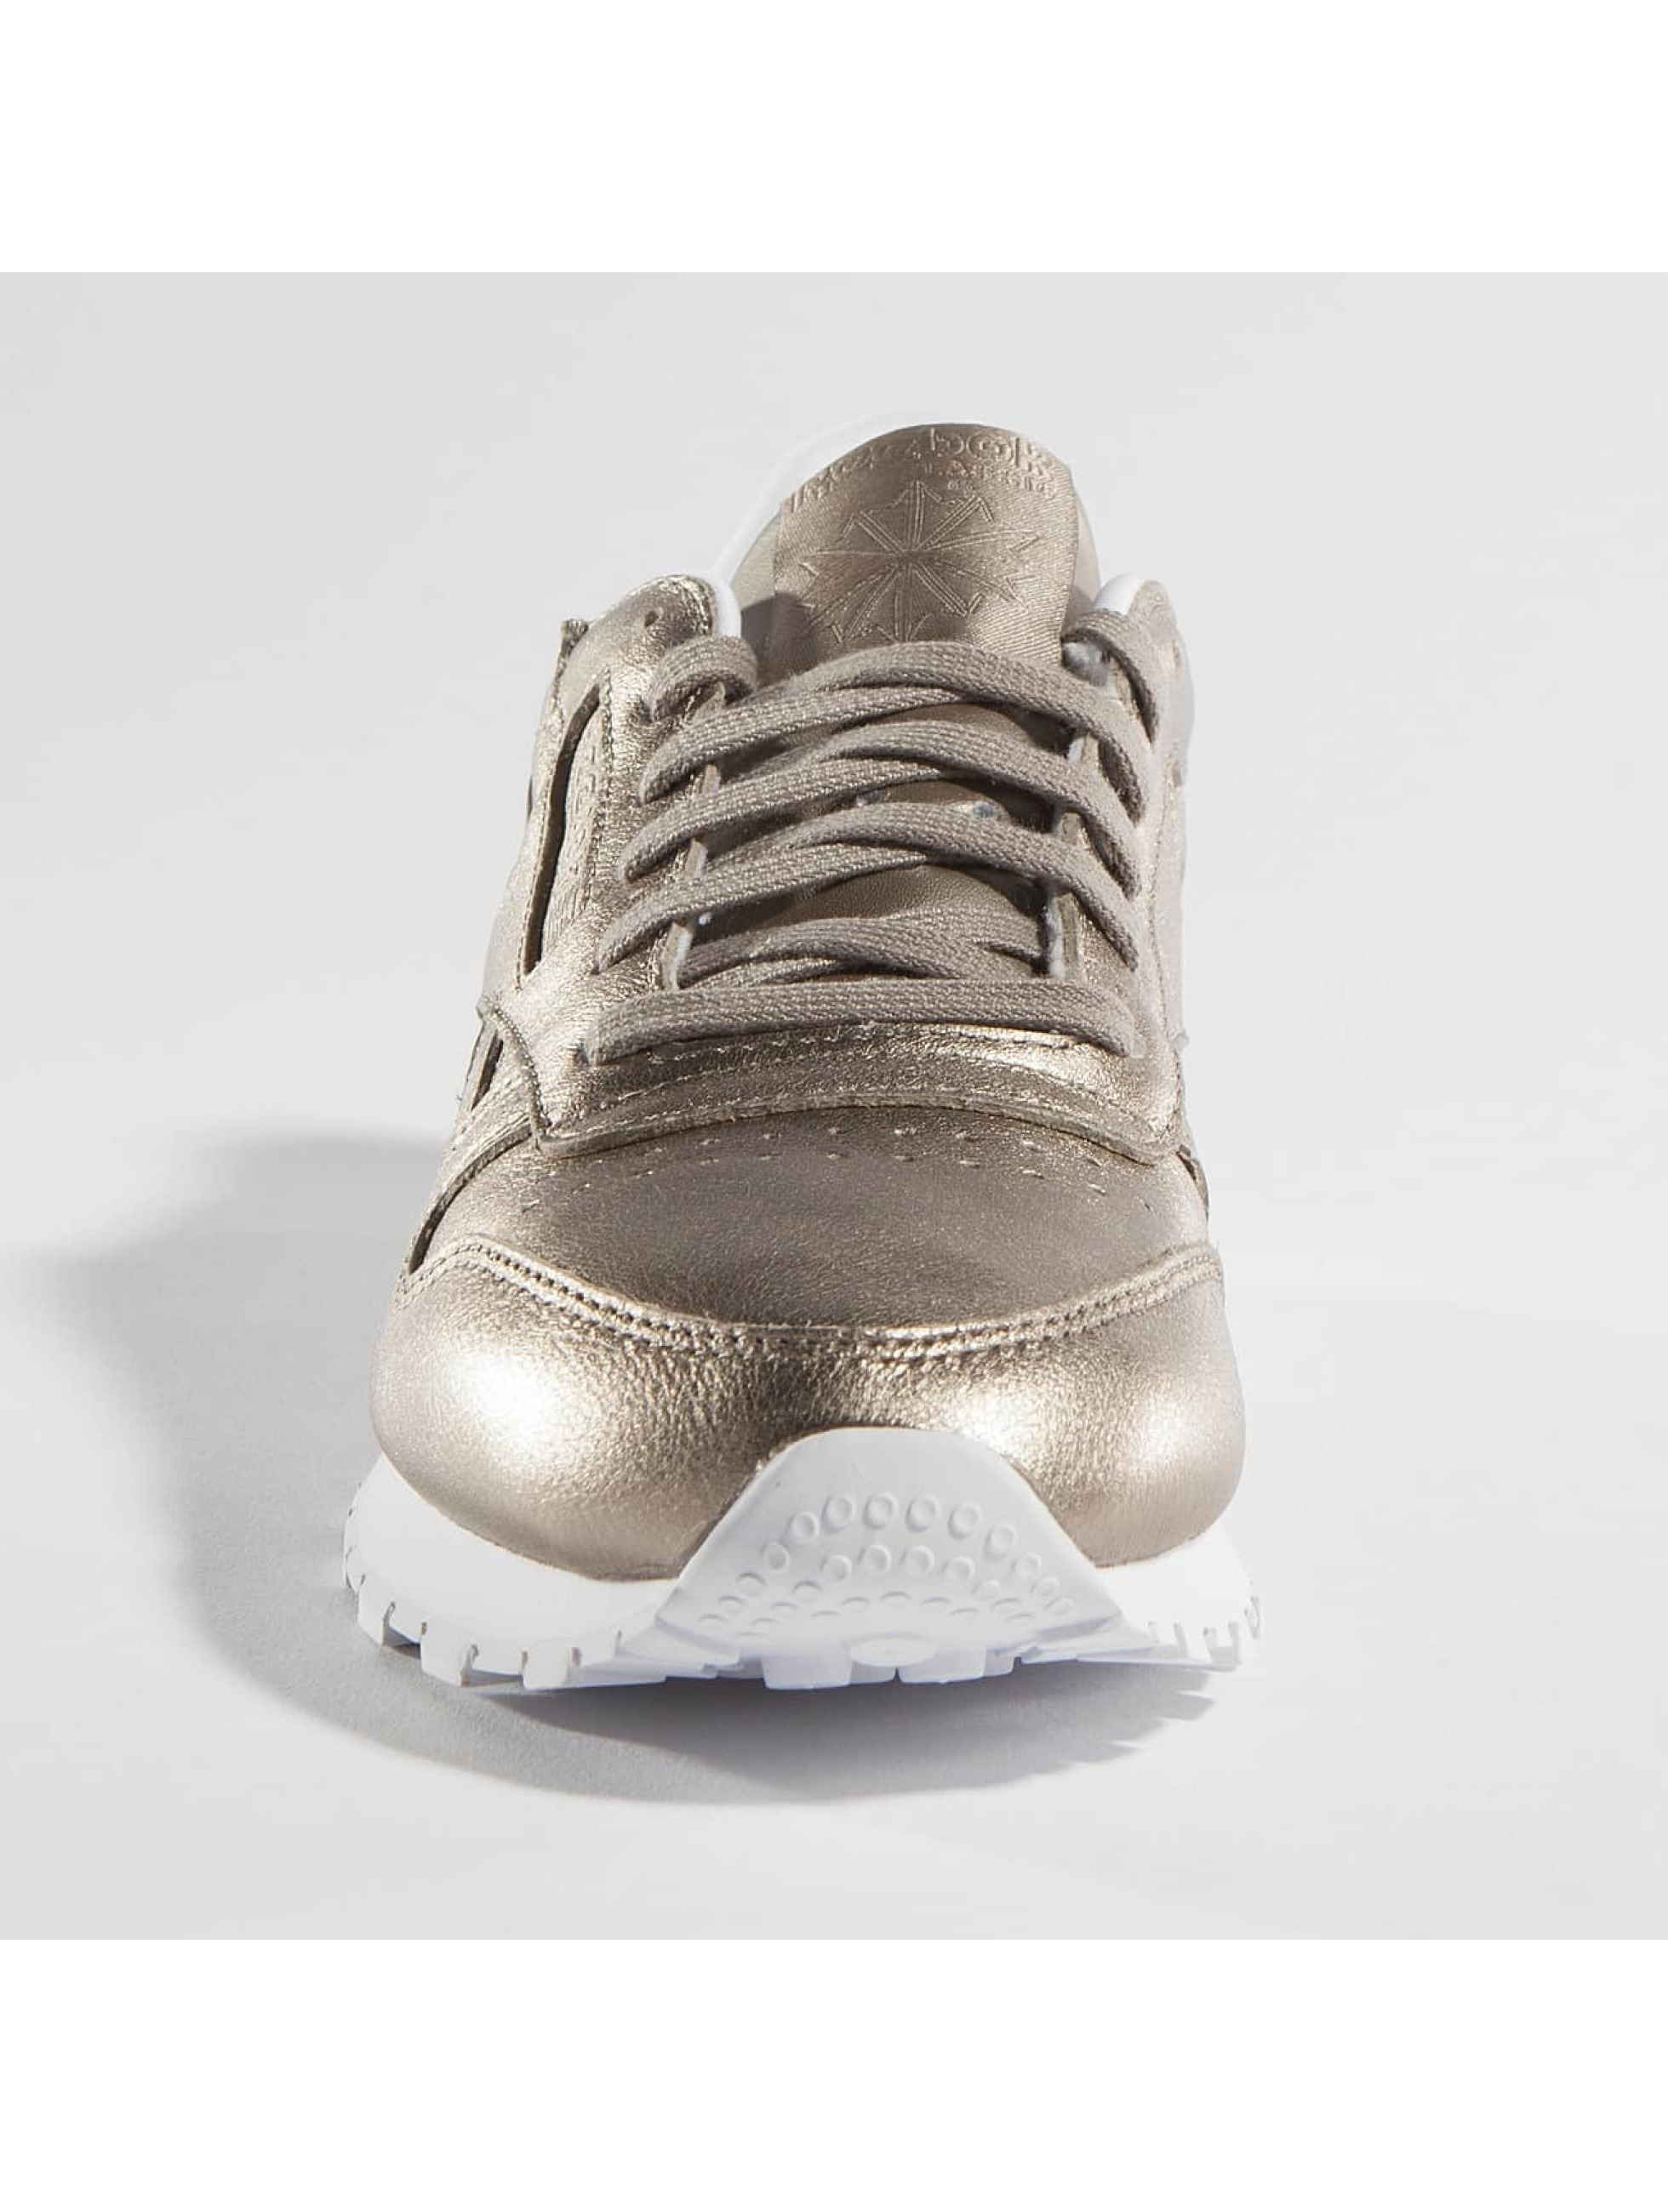 Reebok Baskets Classic Leather Melted Metallic Pearl or